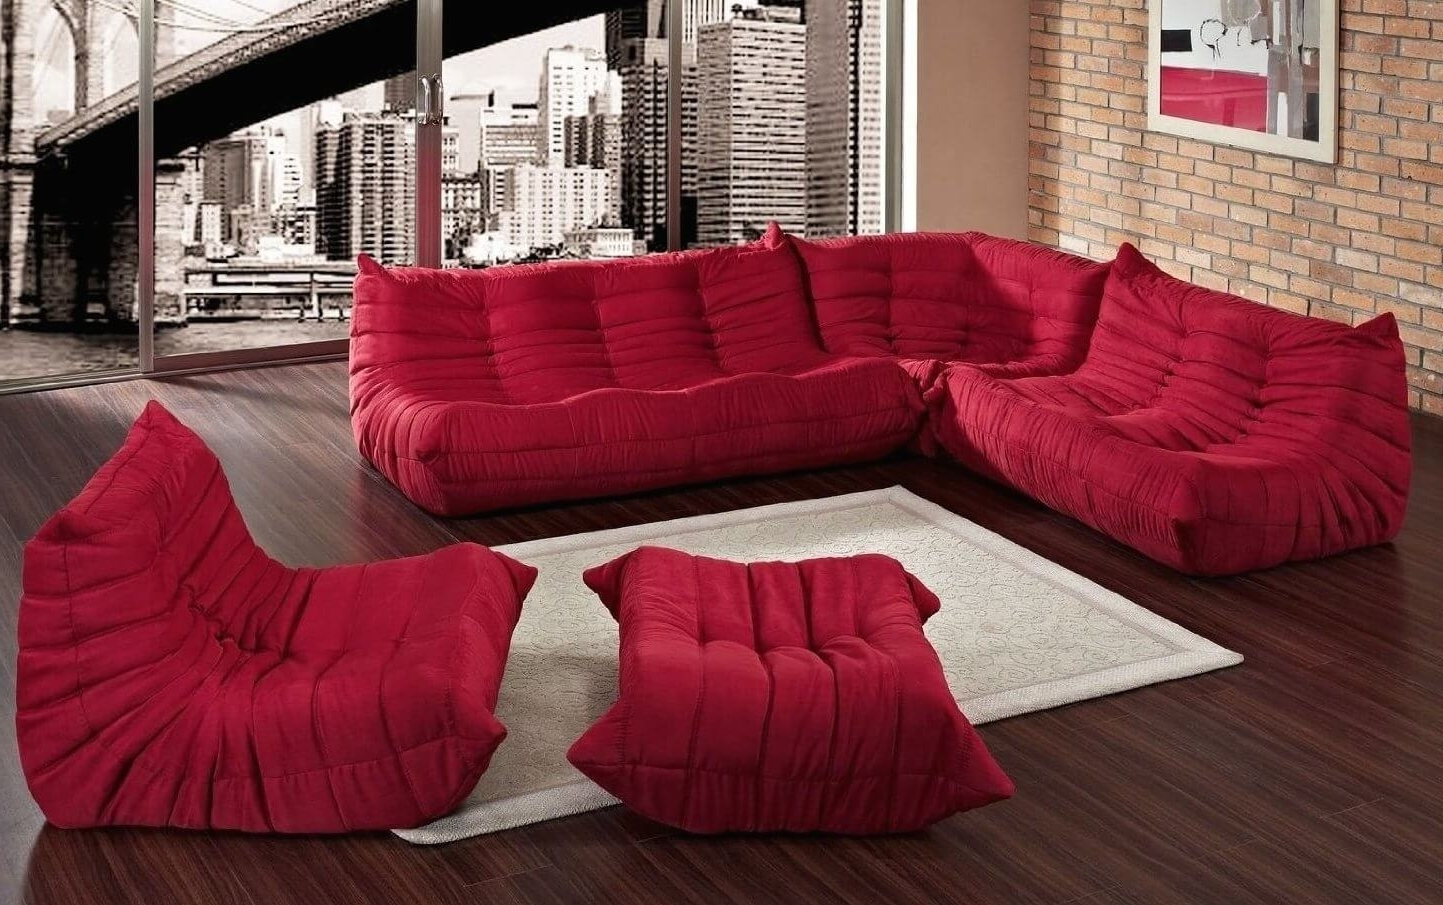 20 Types Of Modular Sectional Sofas Intended For Current Sectional Sofas That Can Be Rearranged (View 2 of 15)